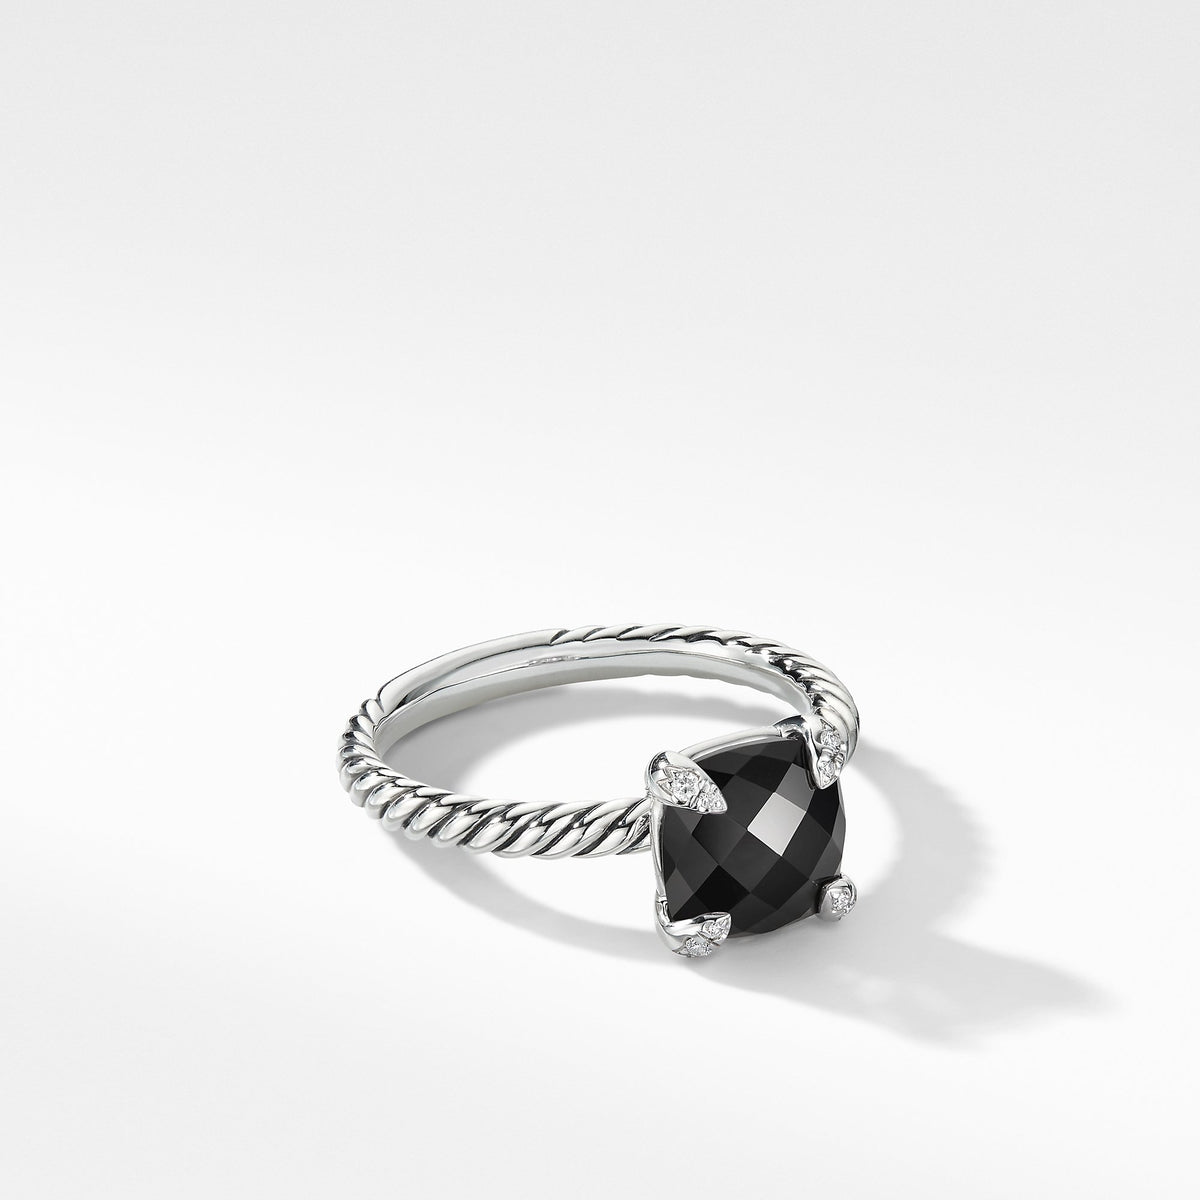 Chatelaine Ring with Black Onyx and Diamonds